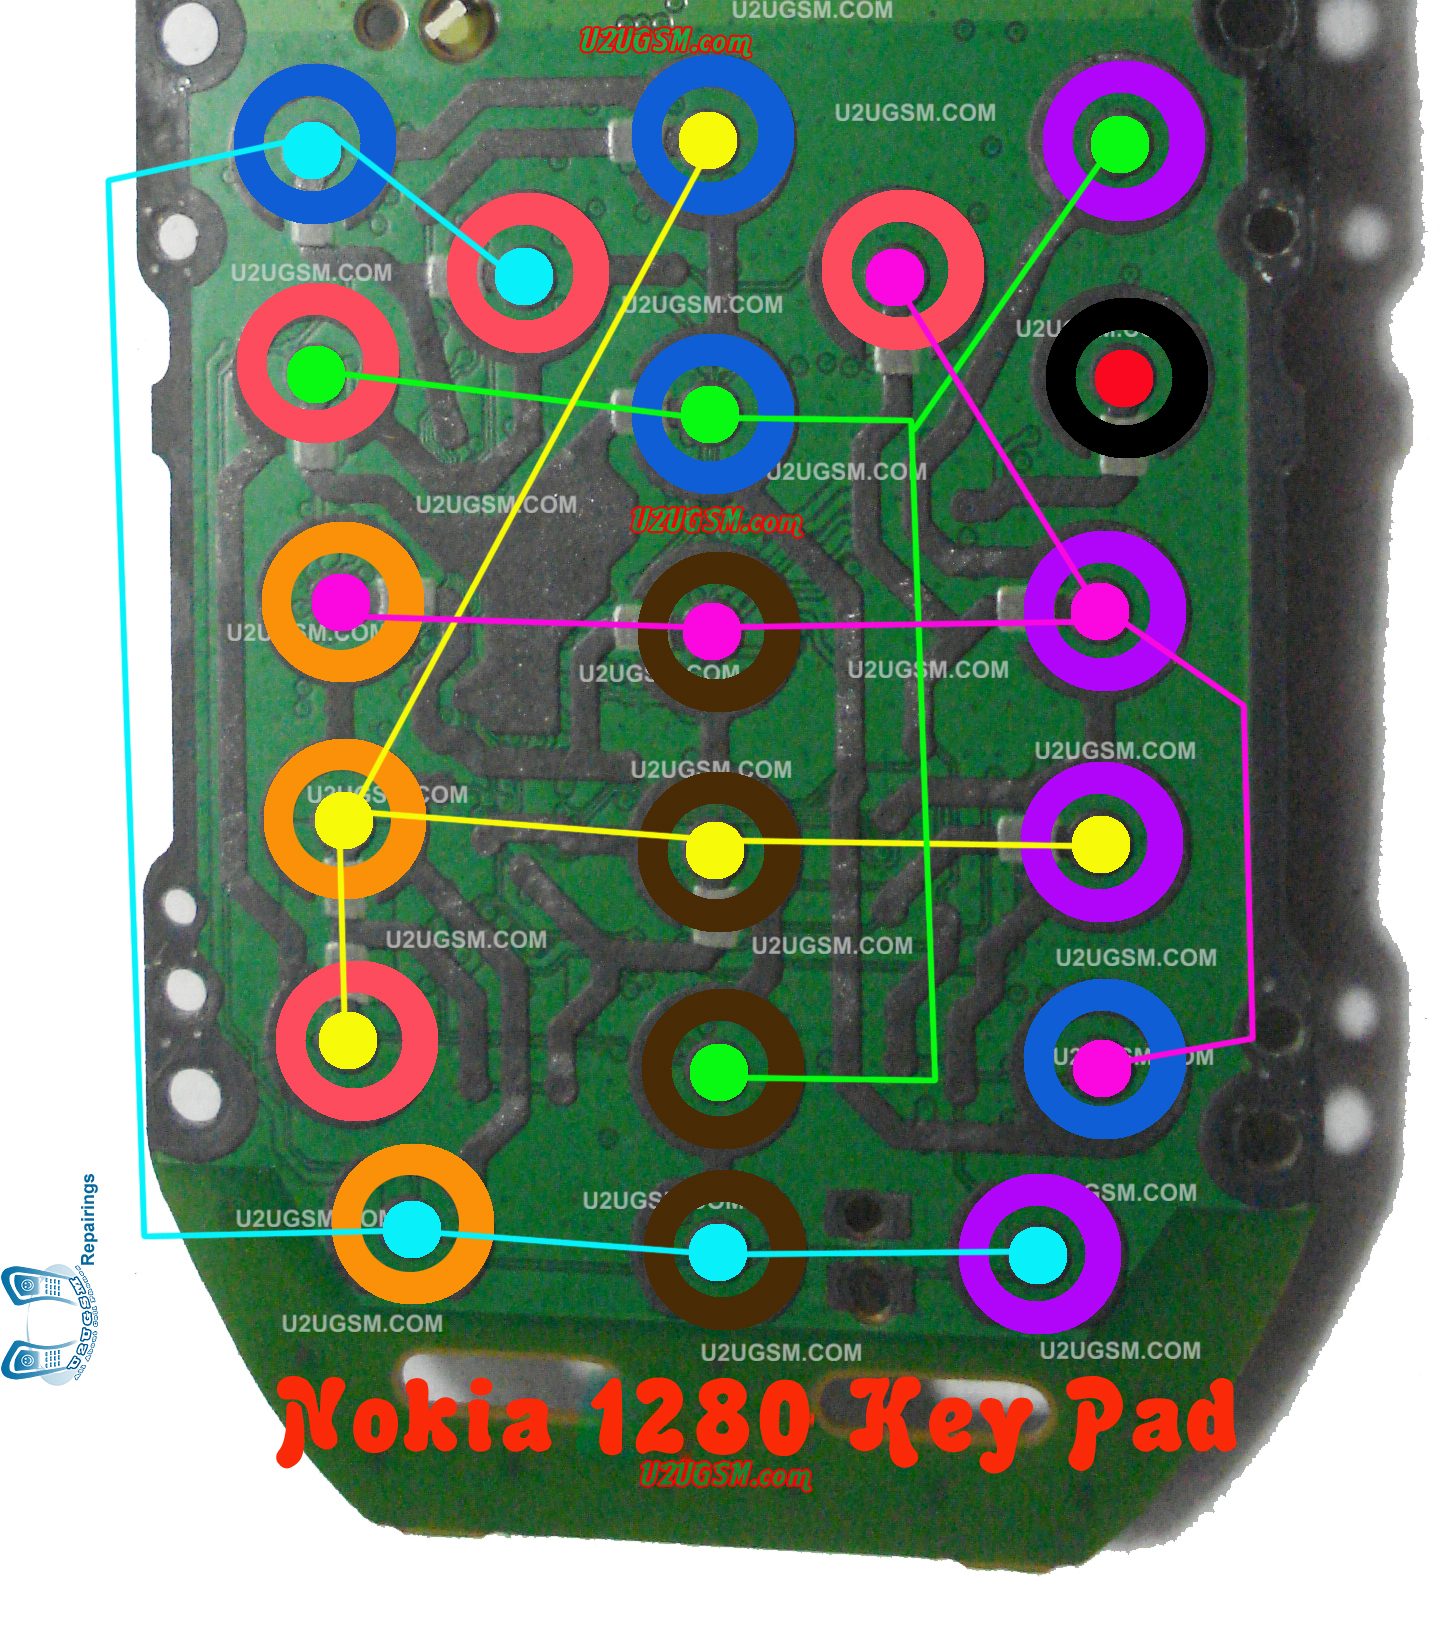 Nokia 1280 Keypad Diagram